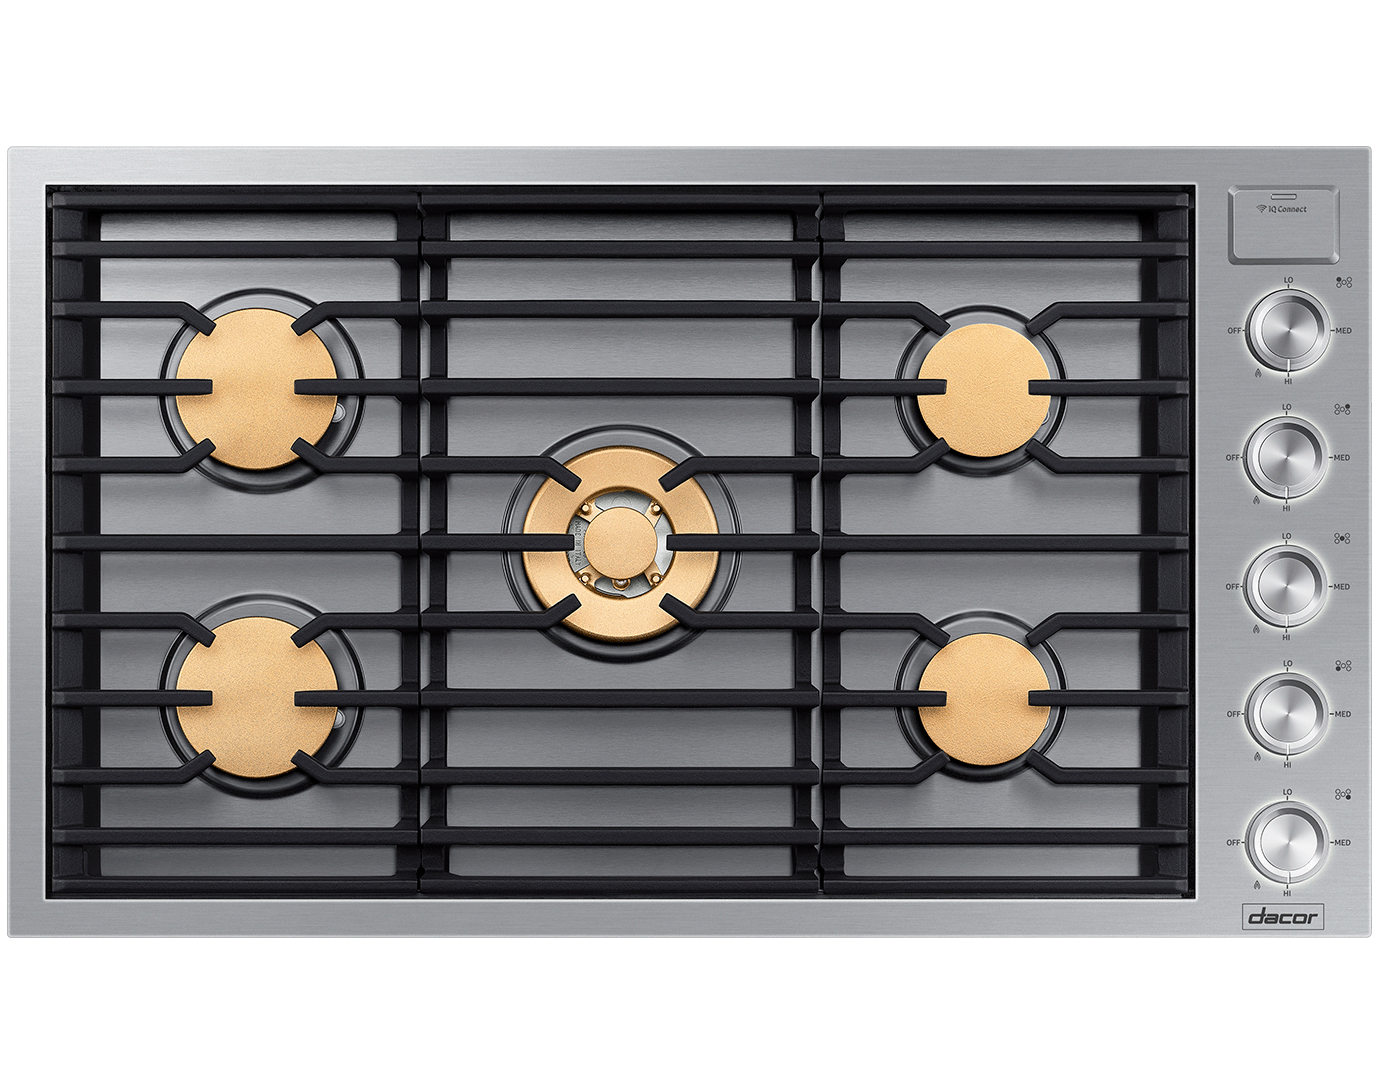 A silver stainless steel Dacor cooktop.